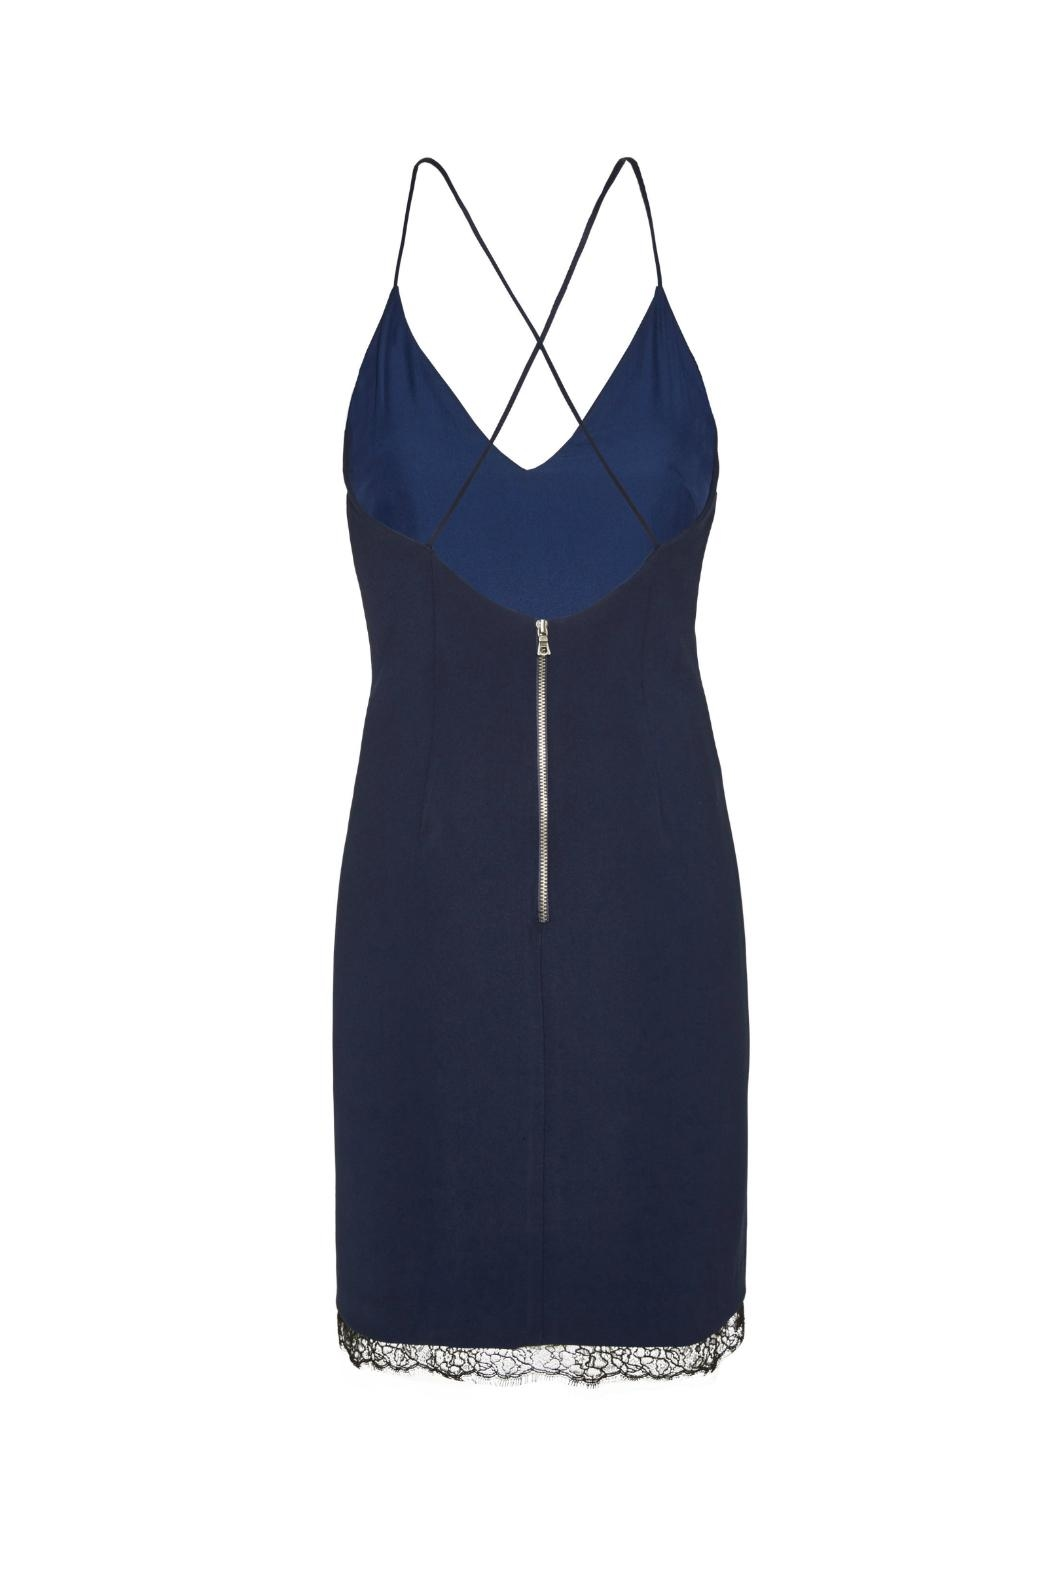 Alice + Olivia Navy Sleeveless Sheath Dress - Back Cropped Image